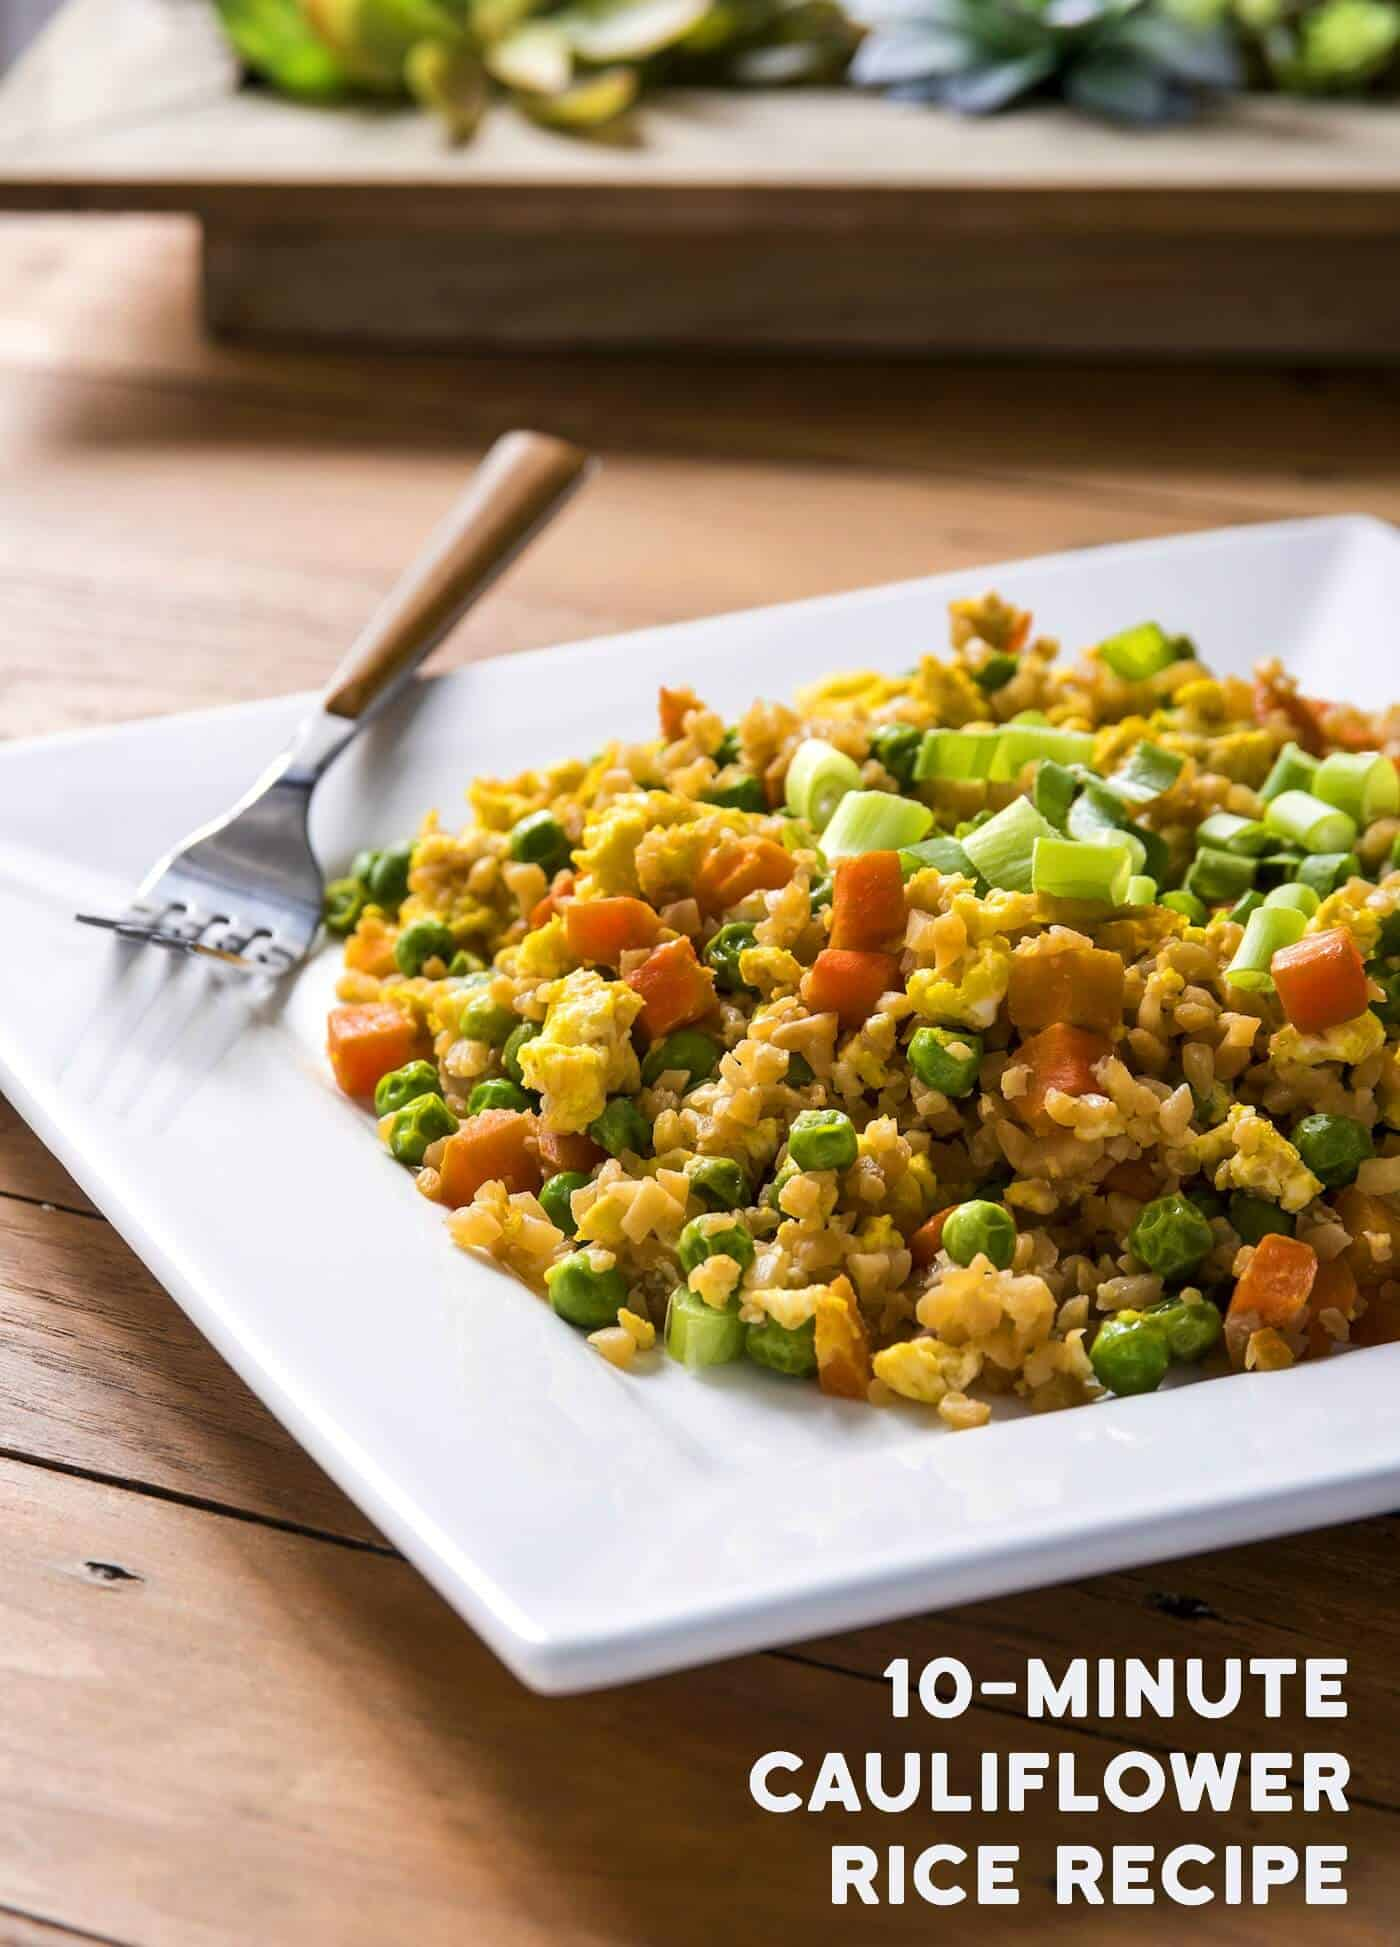 Are you looking for a low calorie, delicious dinner that is good for you? Try this cauliflower rice recipe - loaded with veggies and flavor!